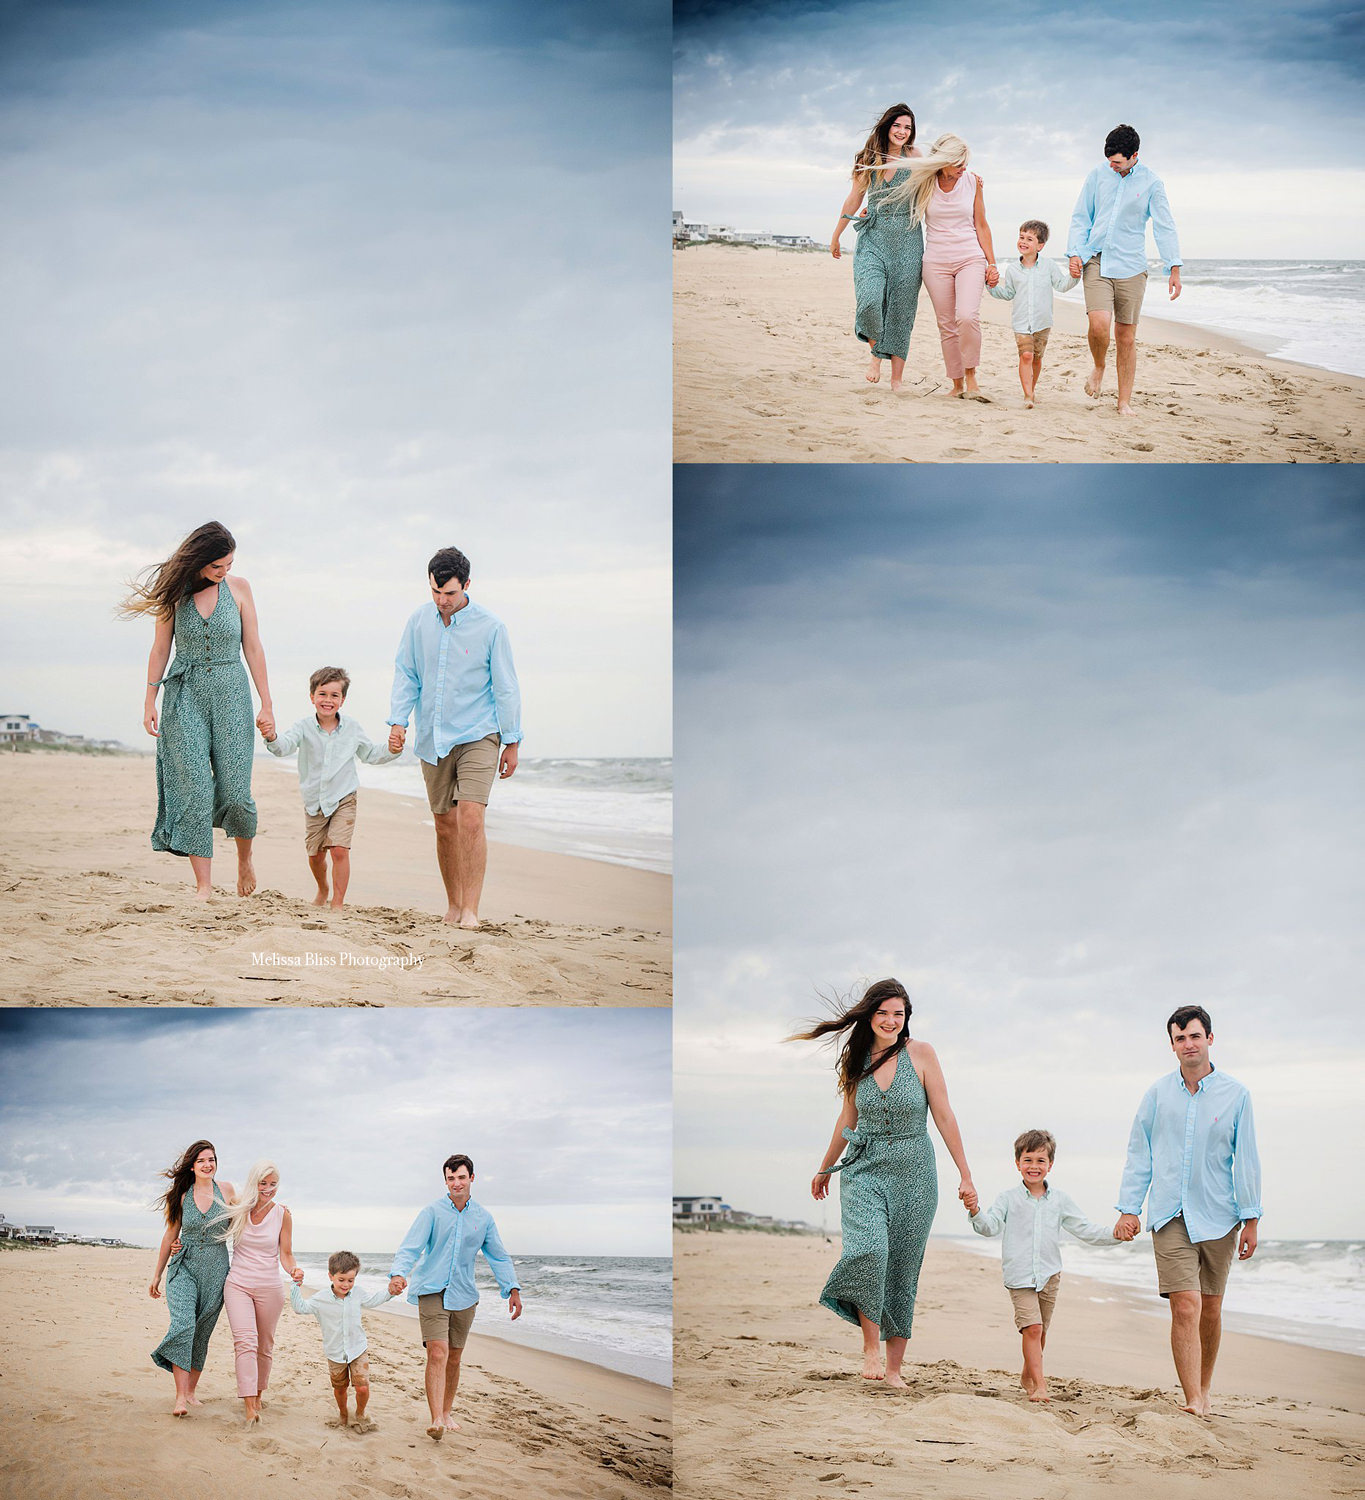 fun-lifesytle-beach-pictures-in-sandbridge-melissa-bliss-photography-virginia-beach.jpg